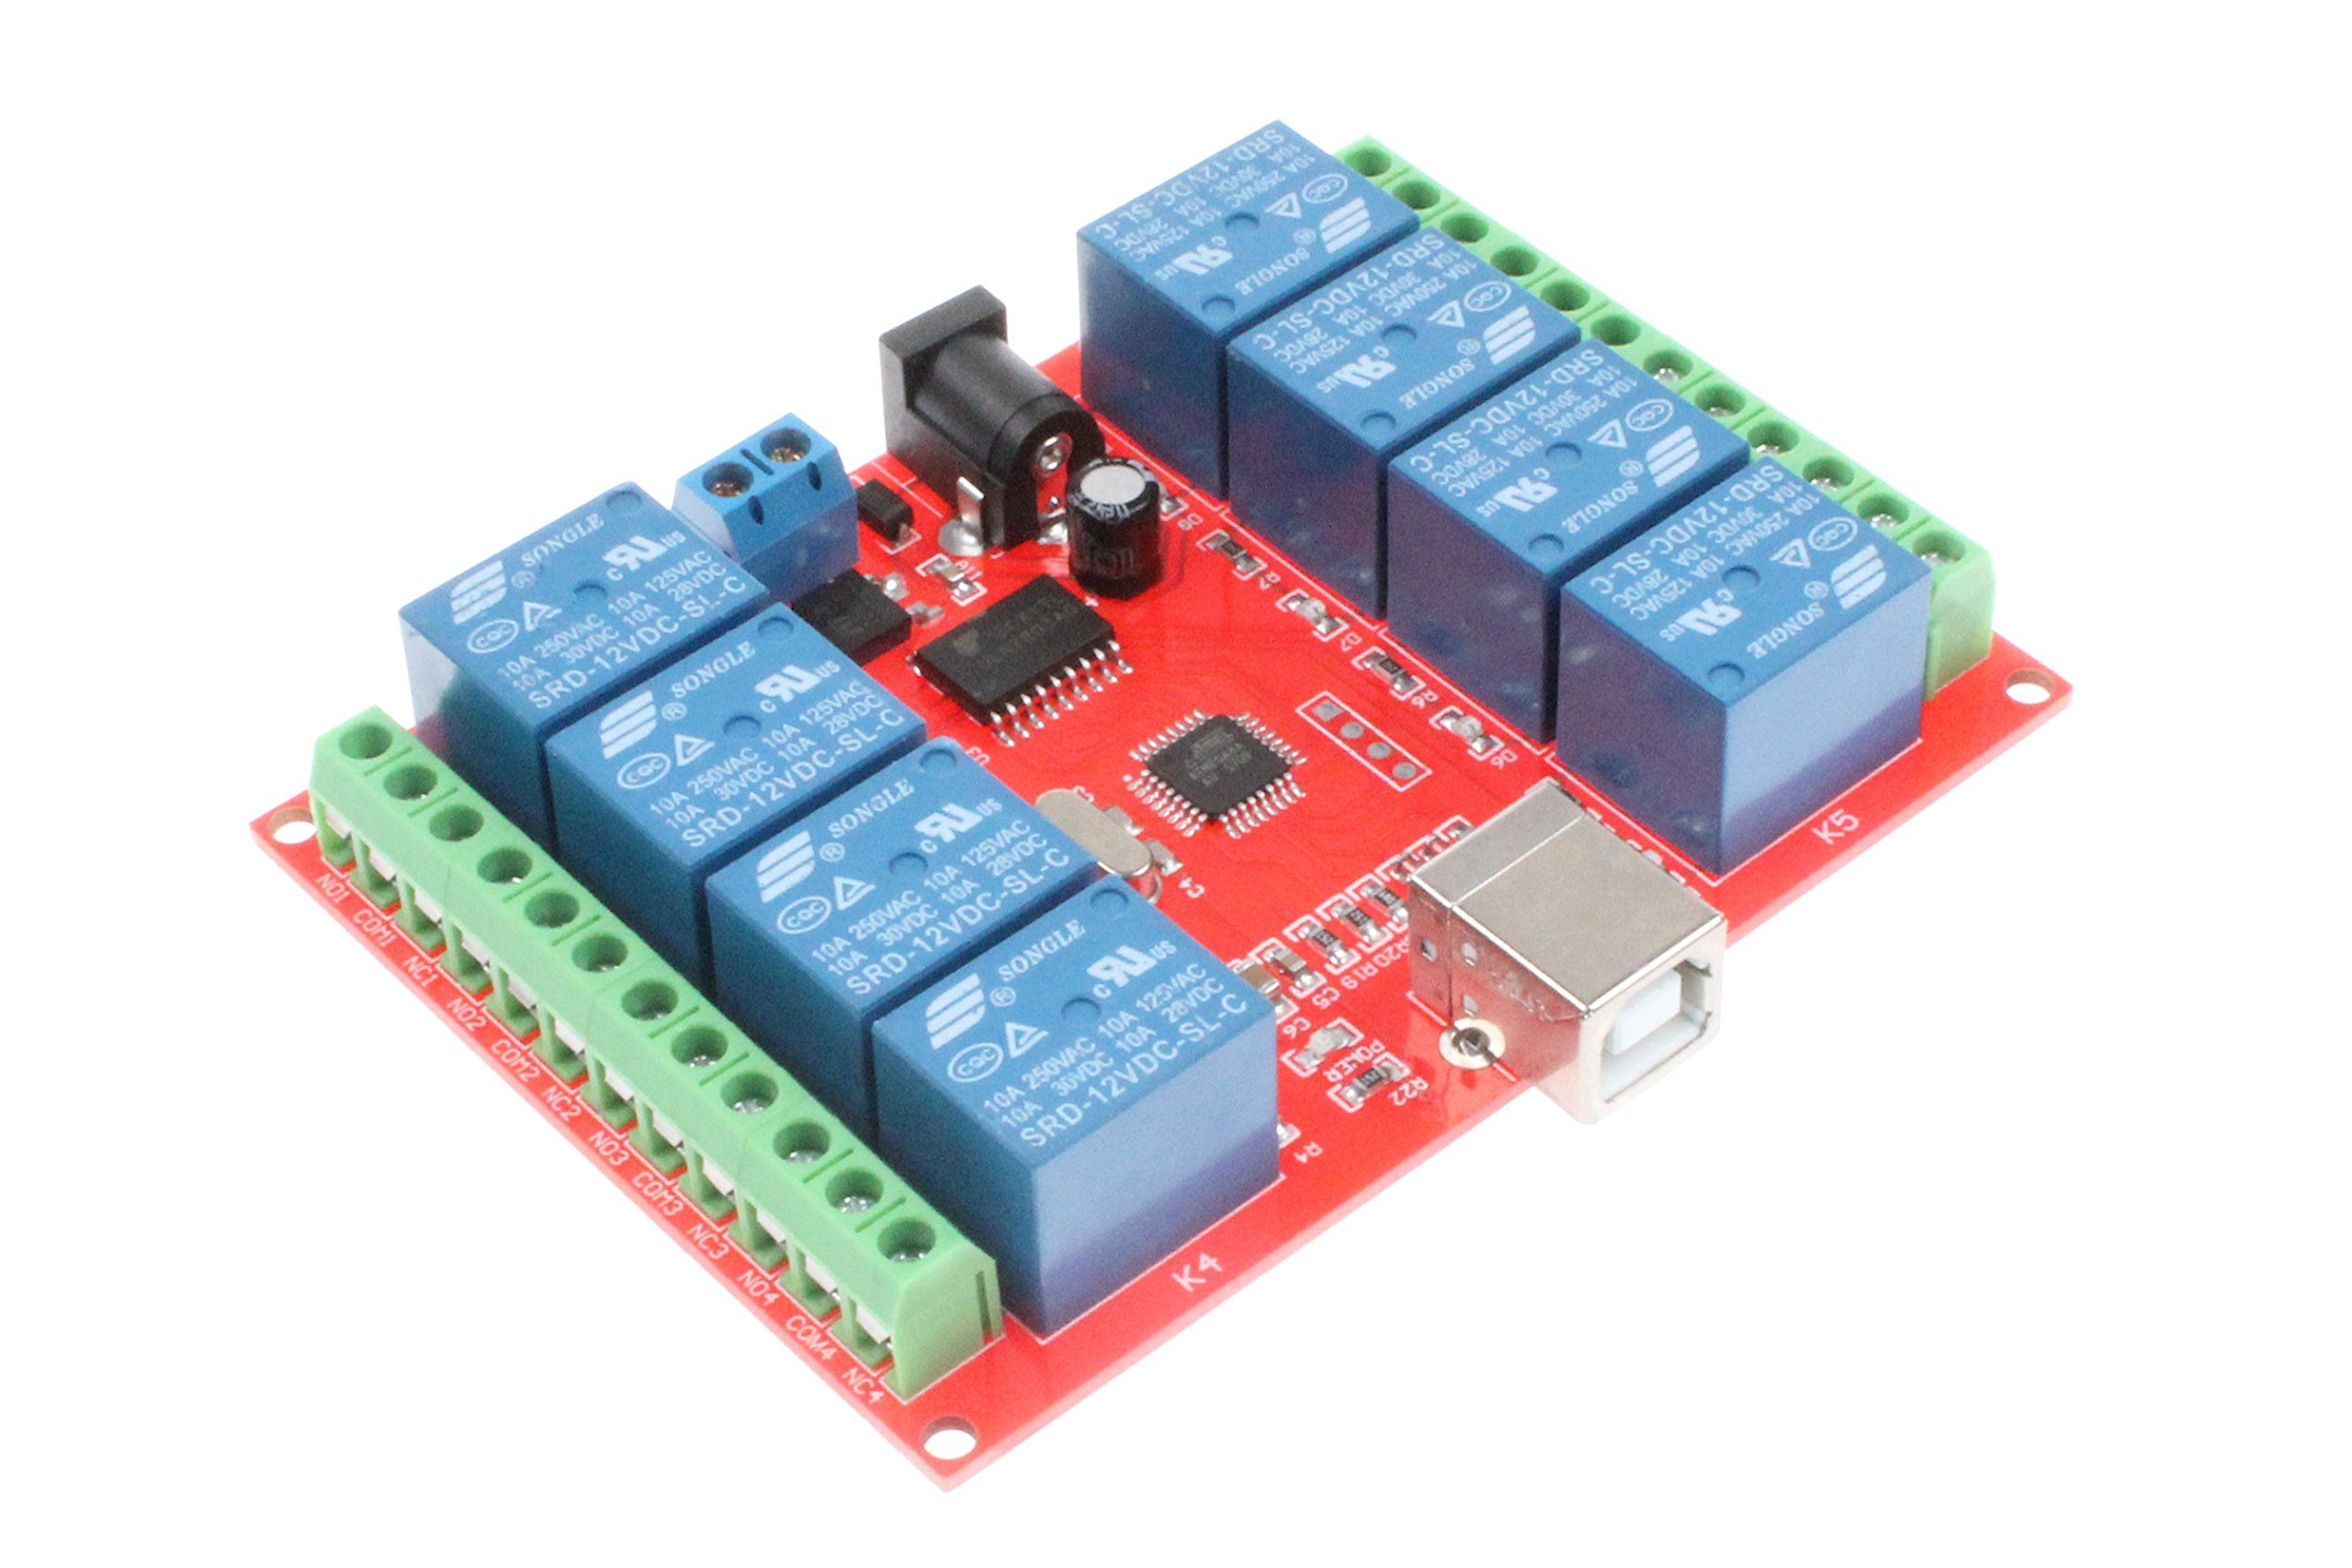 NOYITO 8-Channel 12V Computer USB Control Switch Relay Module Drive-free relay module Plug and Play Suitable for PC Smart Controller by NOYITO (Image #1)